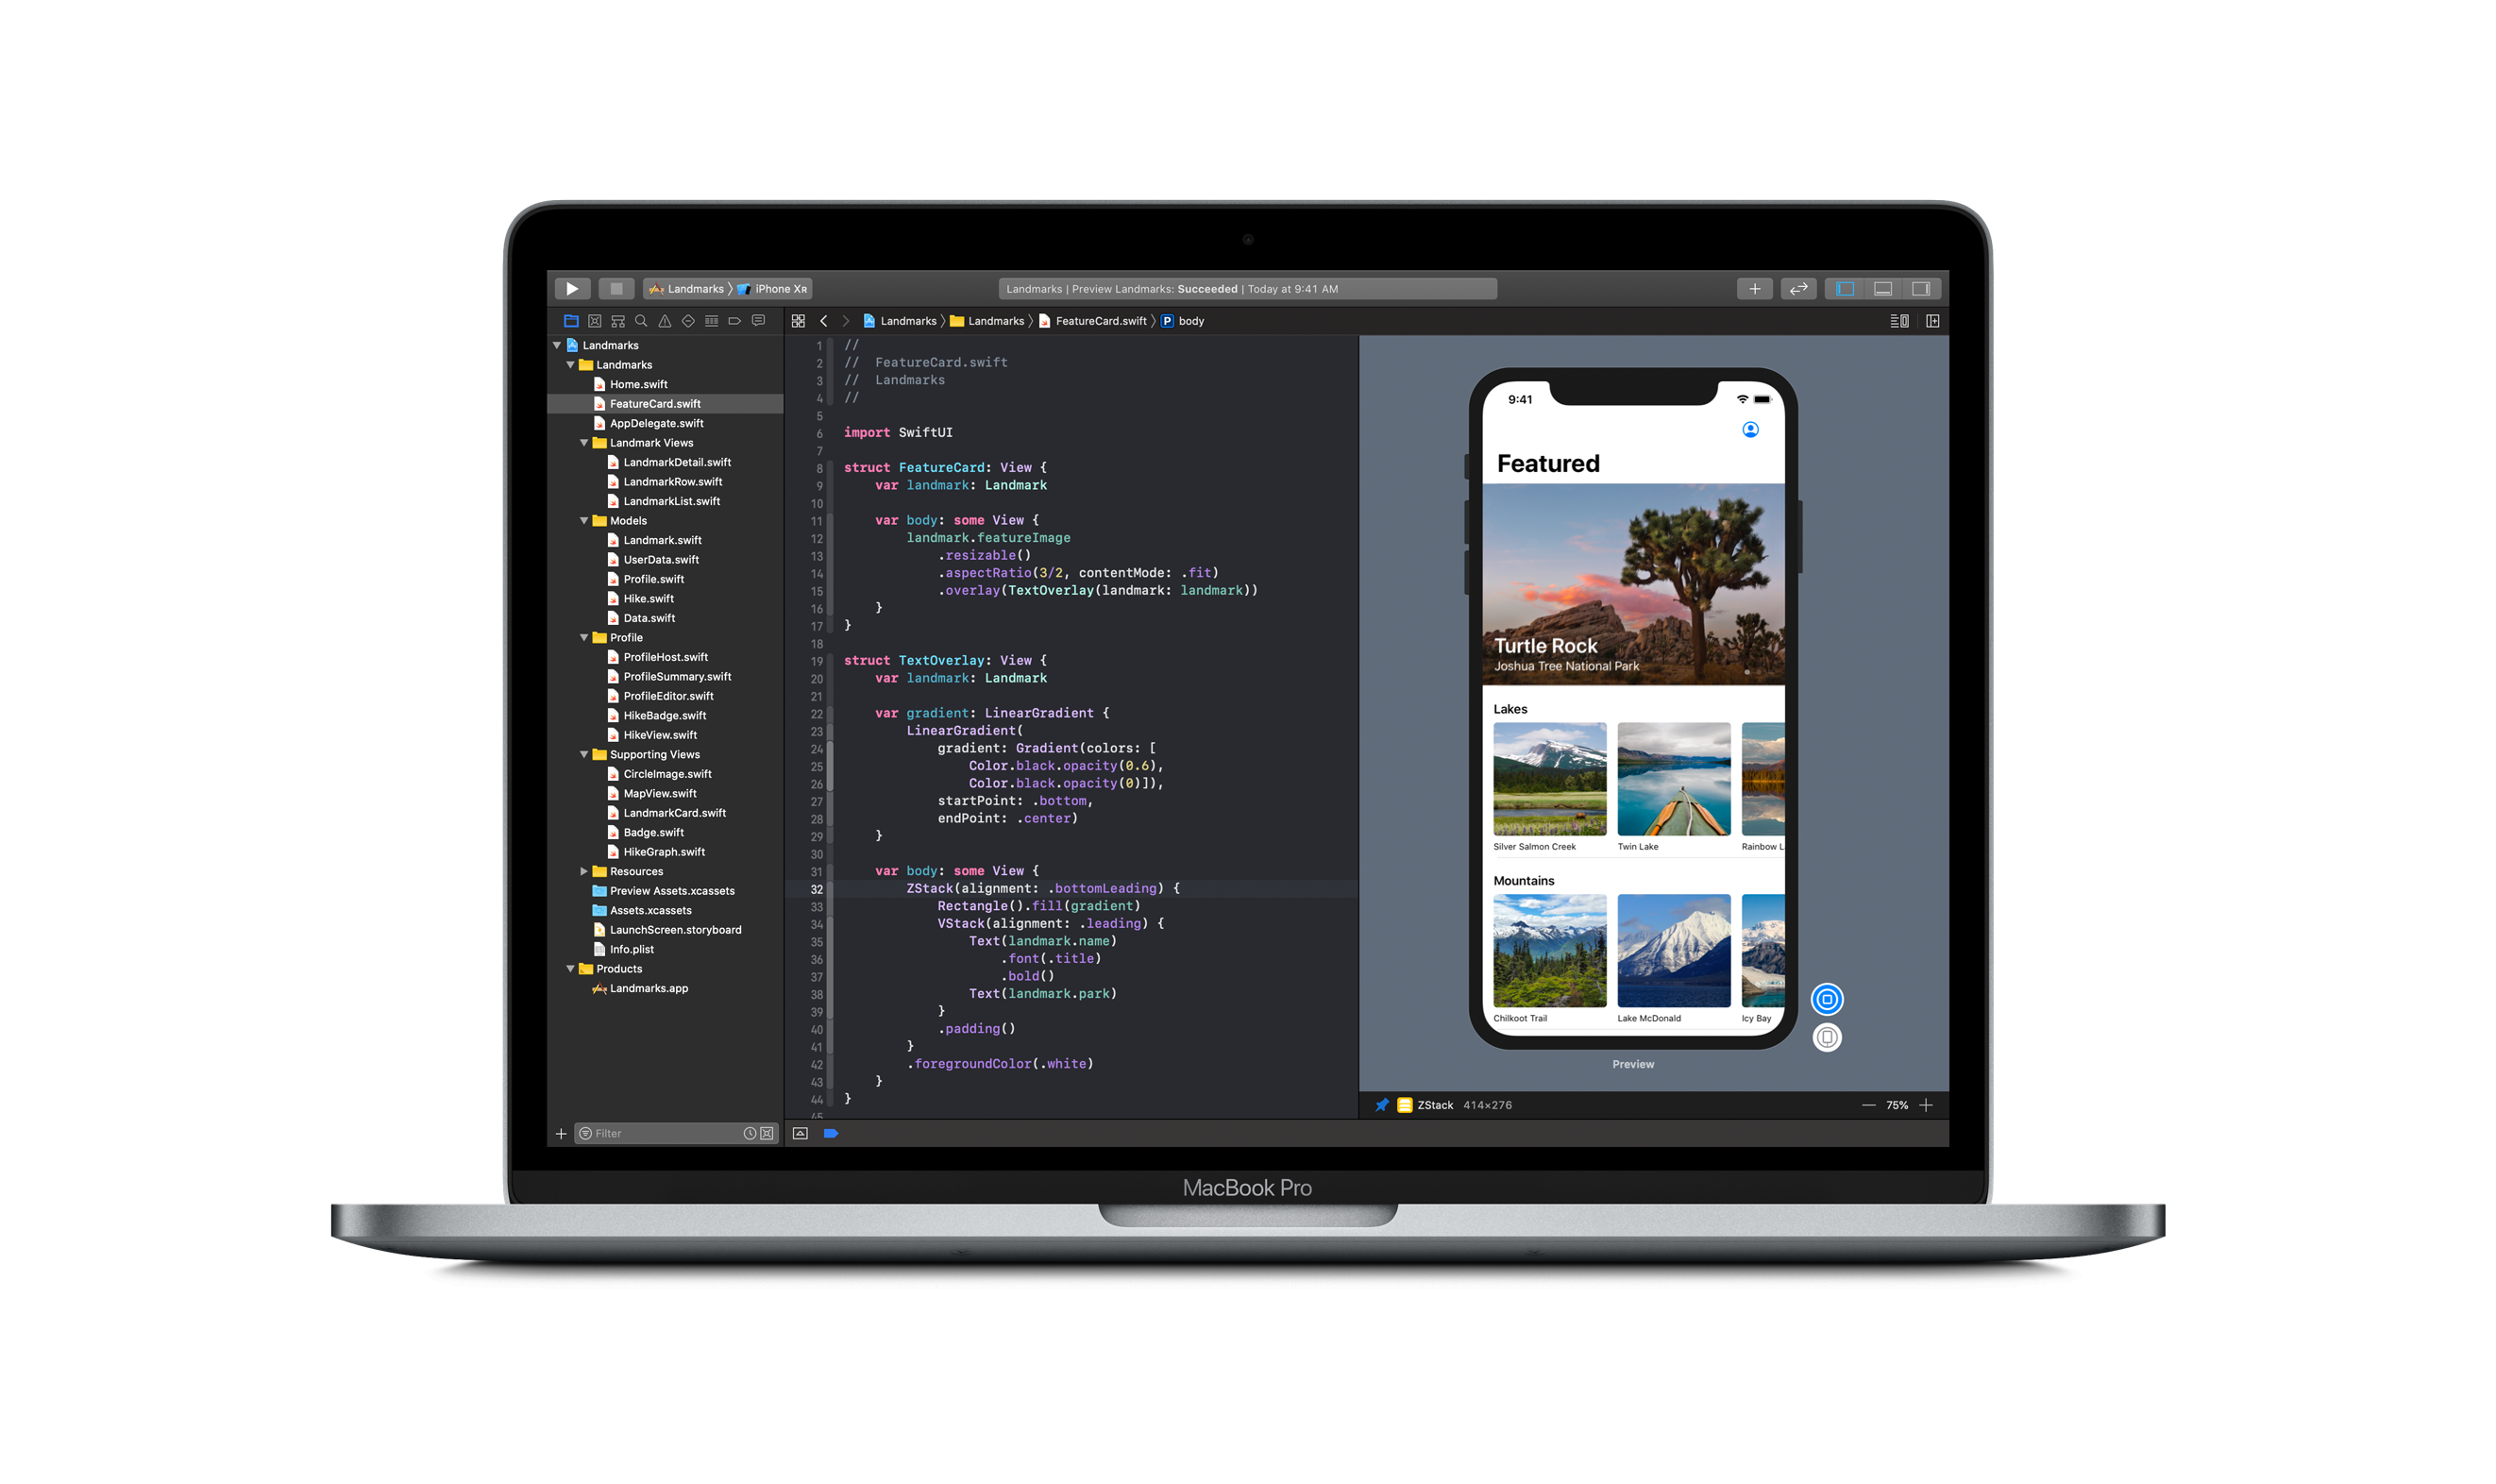 Apple's Official SwiftUI Tutorial